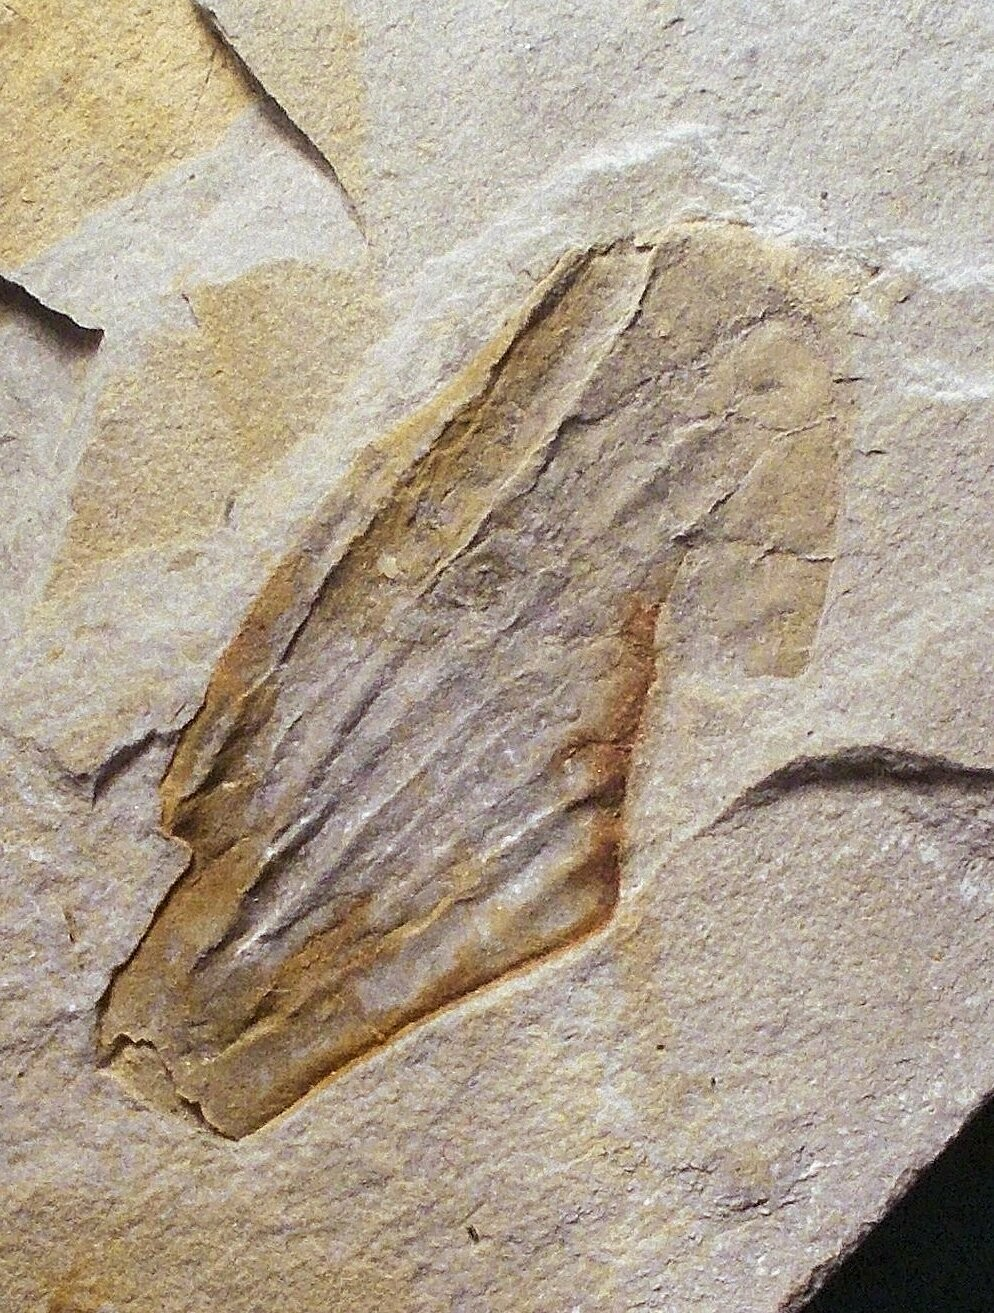 Very Rare 3.5cm British Dragonfly? wing with detailed veination; Upper Carboniferous of Devon, UK.